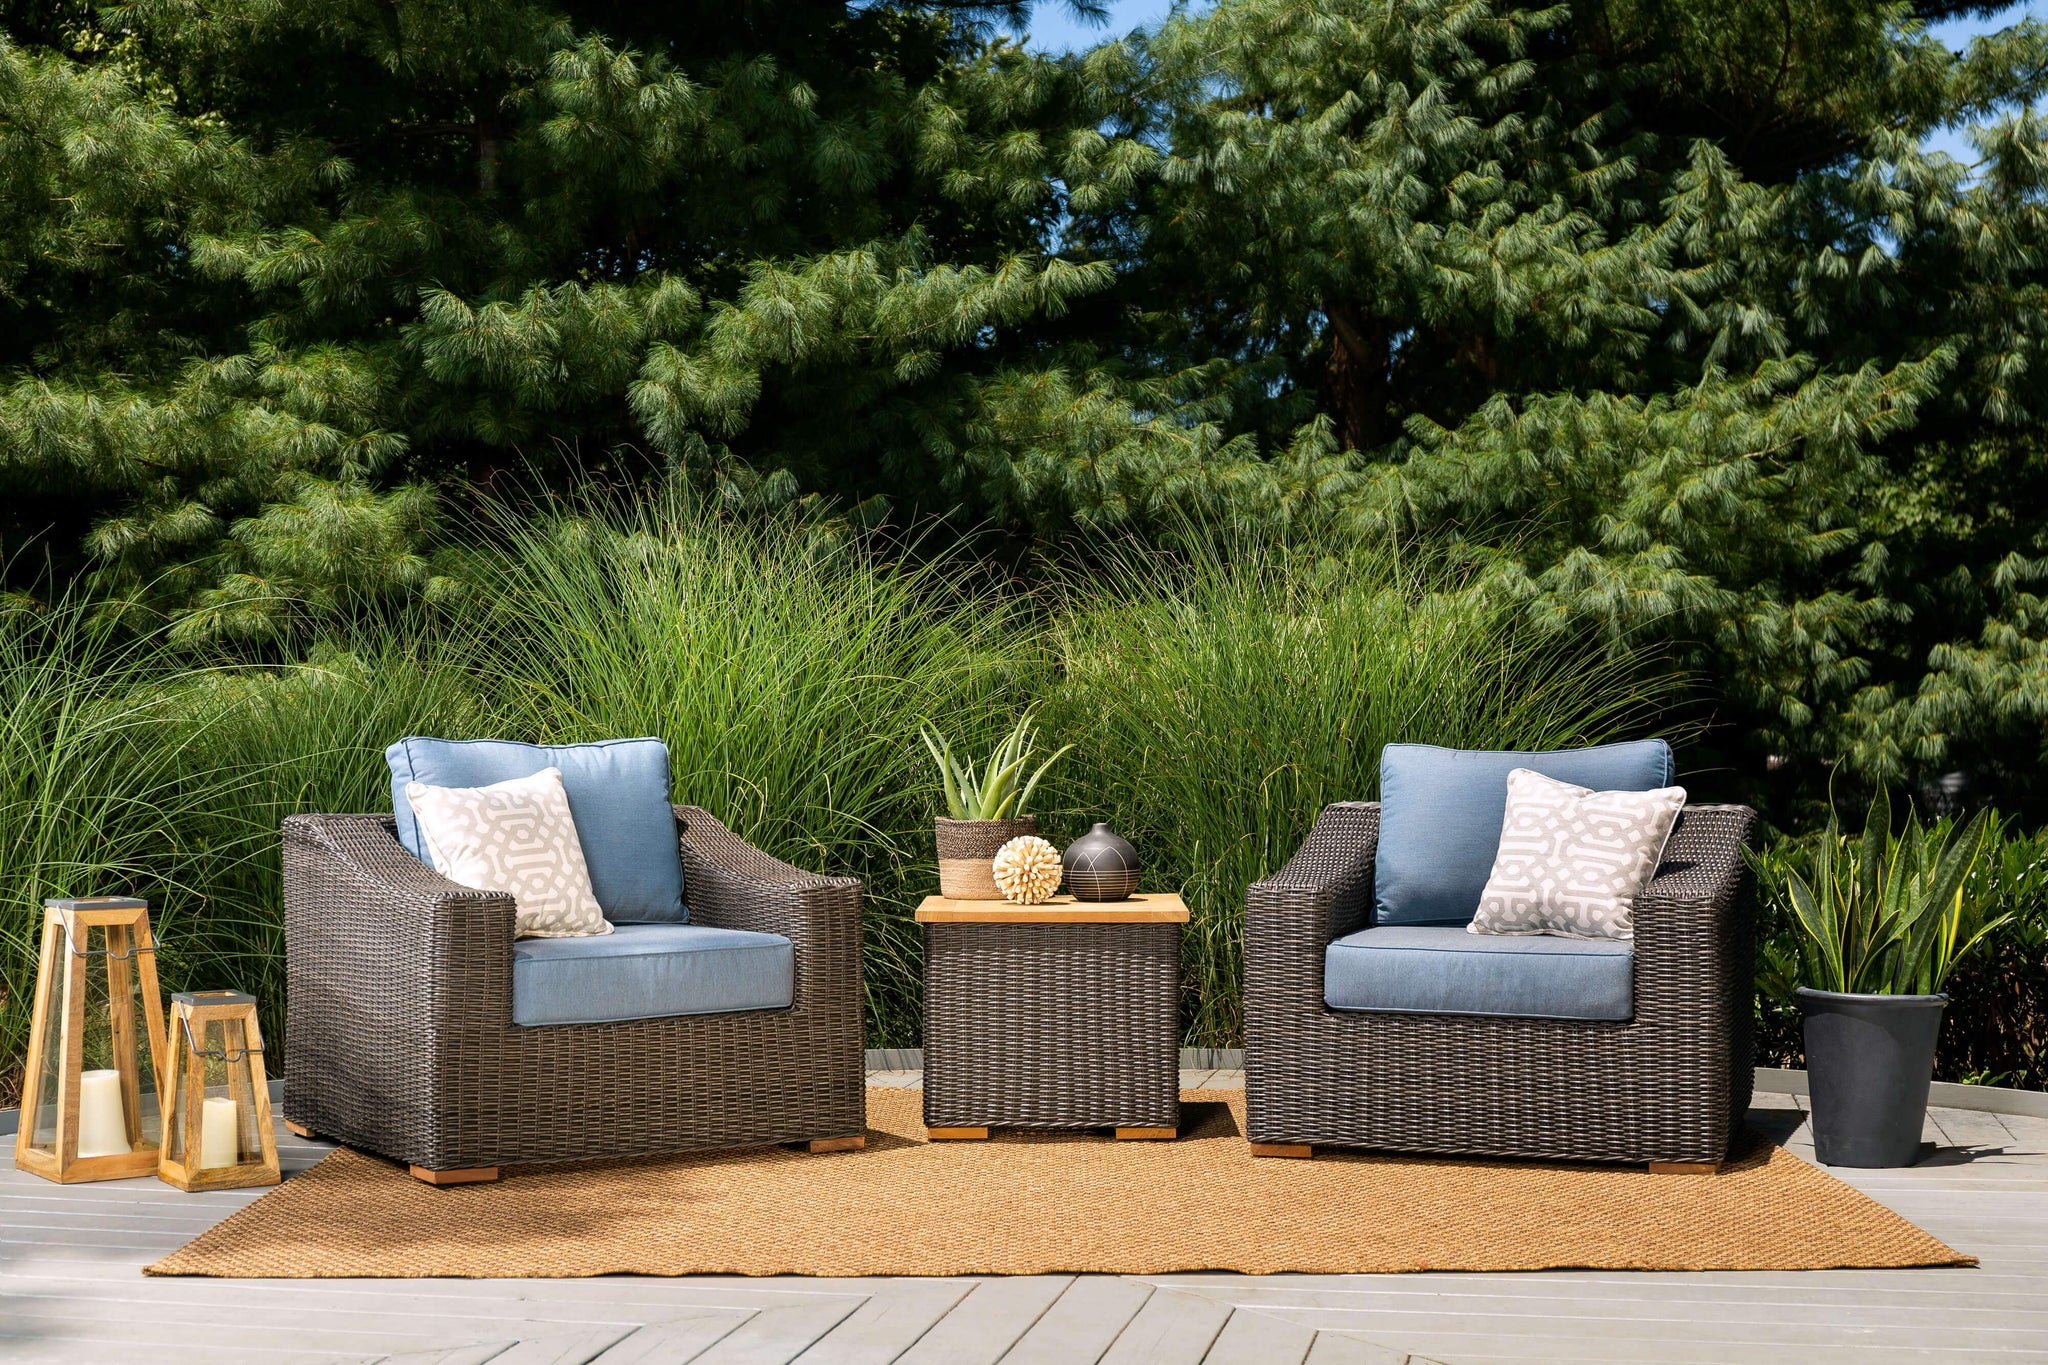 New Boston 3 Piece Wicker Patio Conversation Set: 2 Lounge Chairs And Side  Table (Denim Blue)